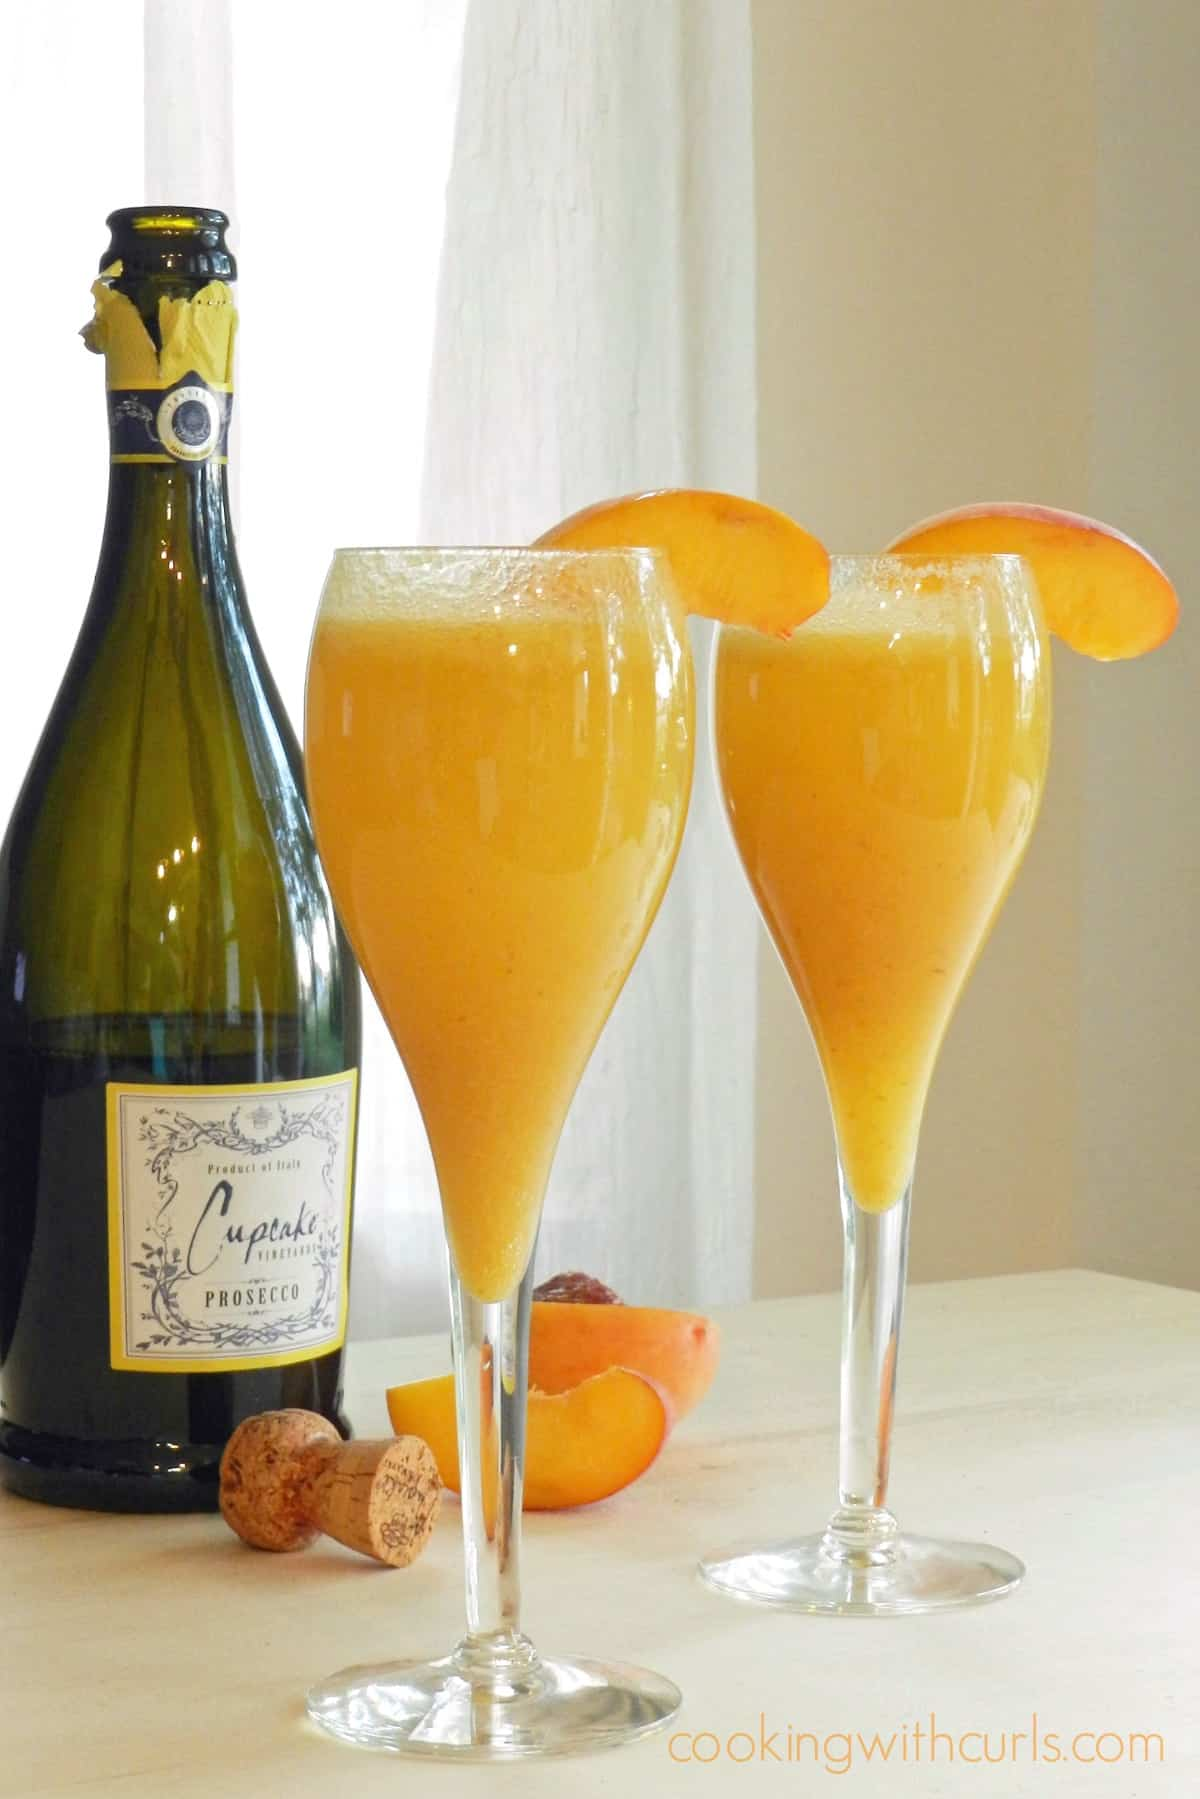 Two champagne glasses filled with Peach Bellini with a bottle of prosecco in the background.